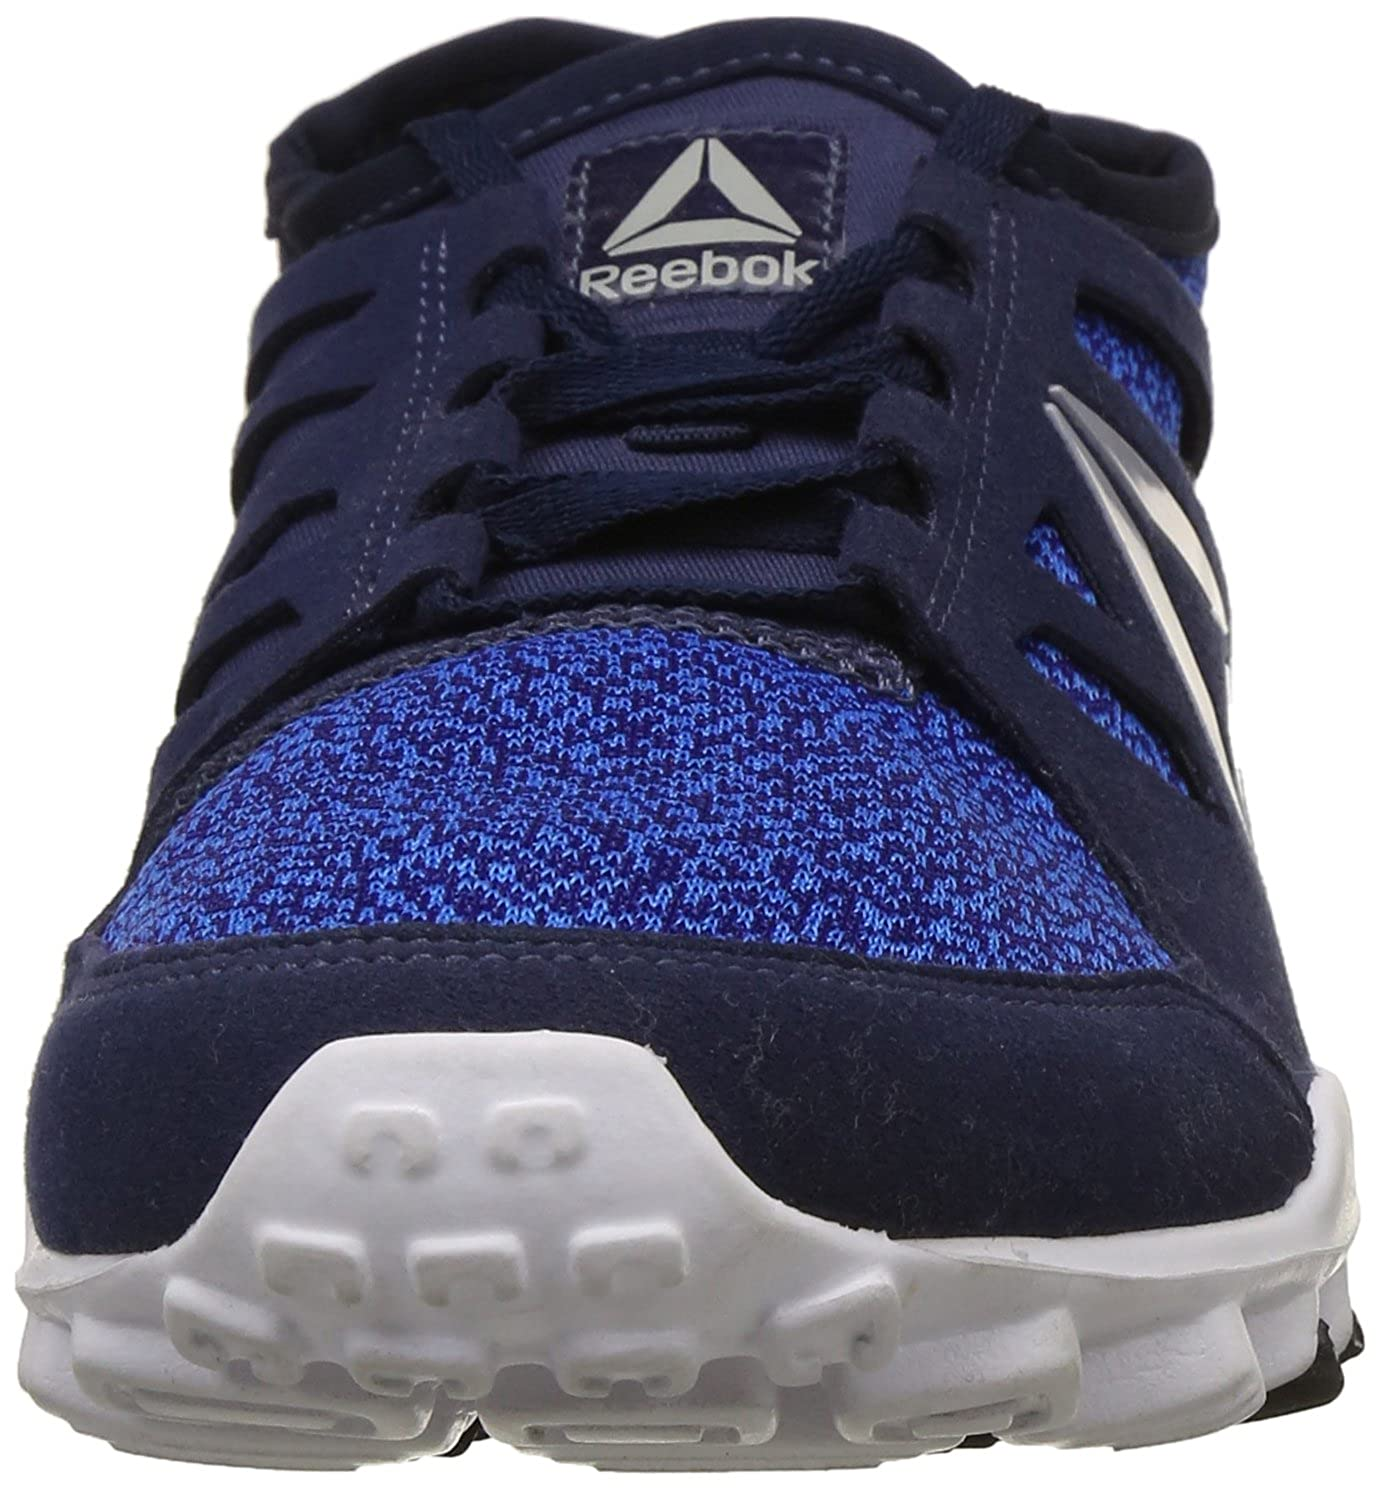 9e05cbb0daa Reebok Men s Travel Tr Pro 2.0 Running Shoes  Buy Online at Low Prices in  India - Amazon.in